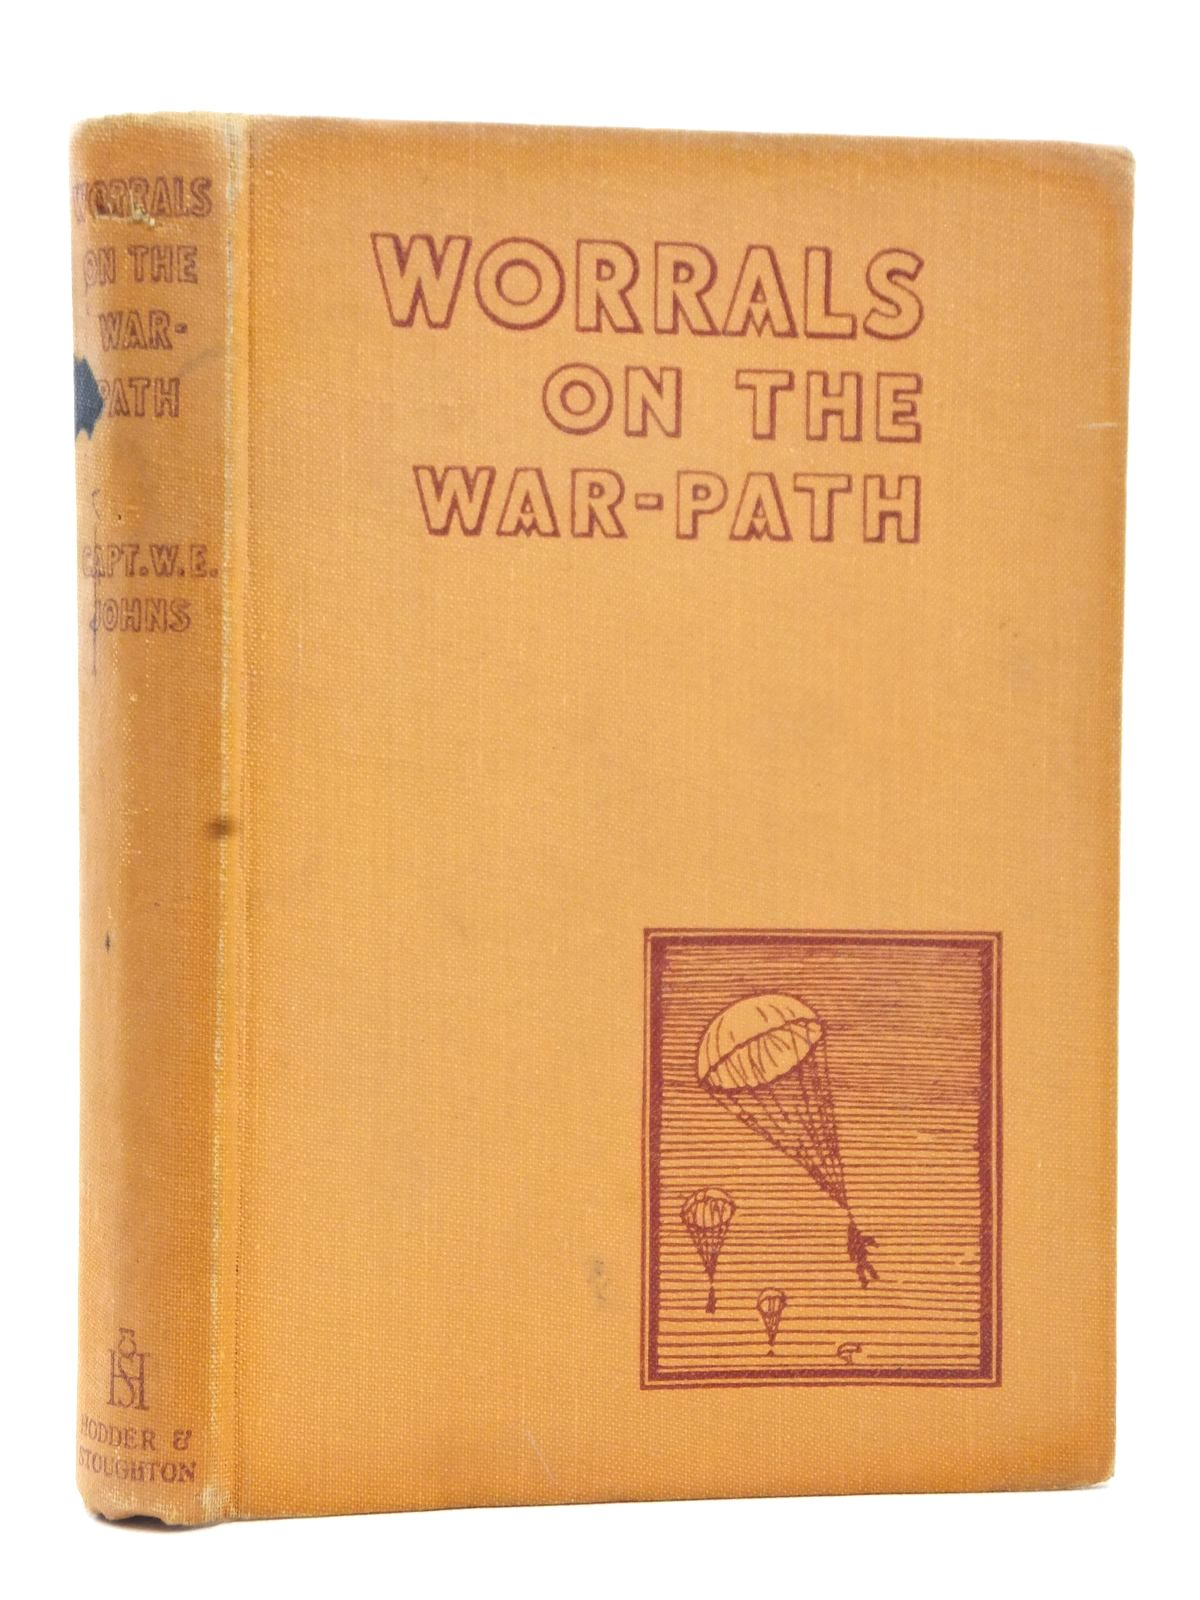 Photo of WORRALS ON THE WAR-PATH written by Johns, W.E. illustrated by Stead, published by Hodder & Stoughton (STOCK CODE: 1609221)  for sale by Stella & Rose's Books